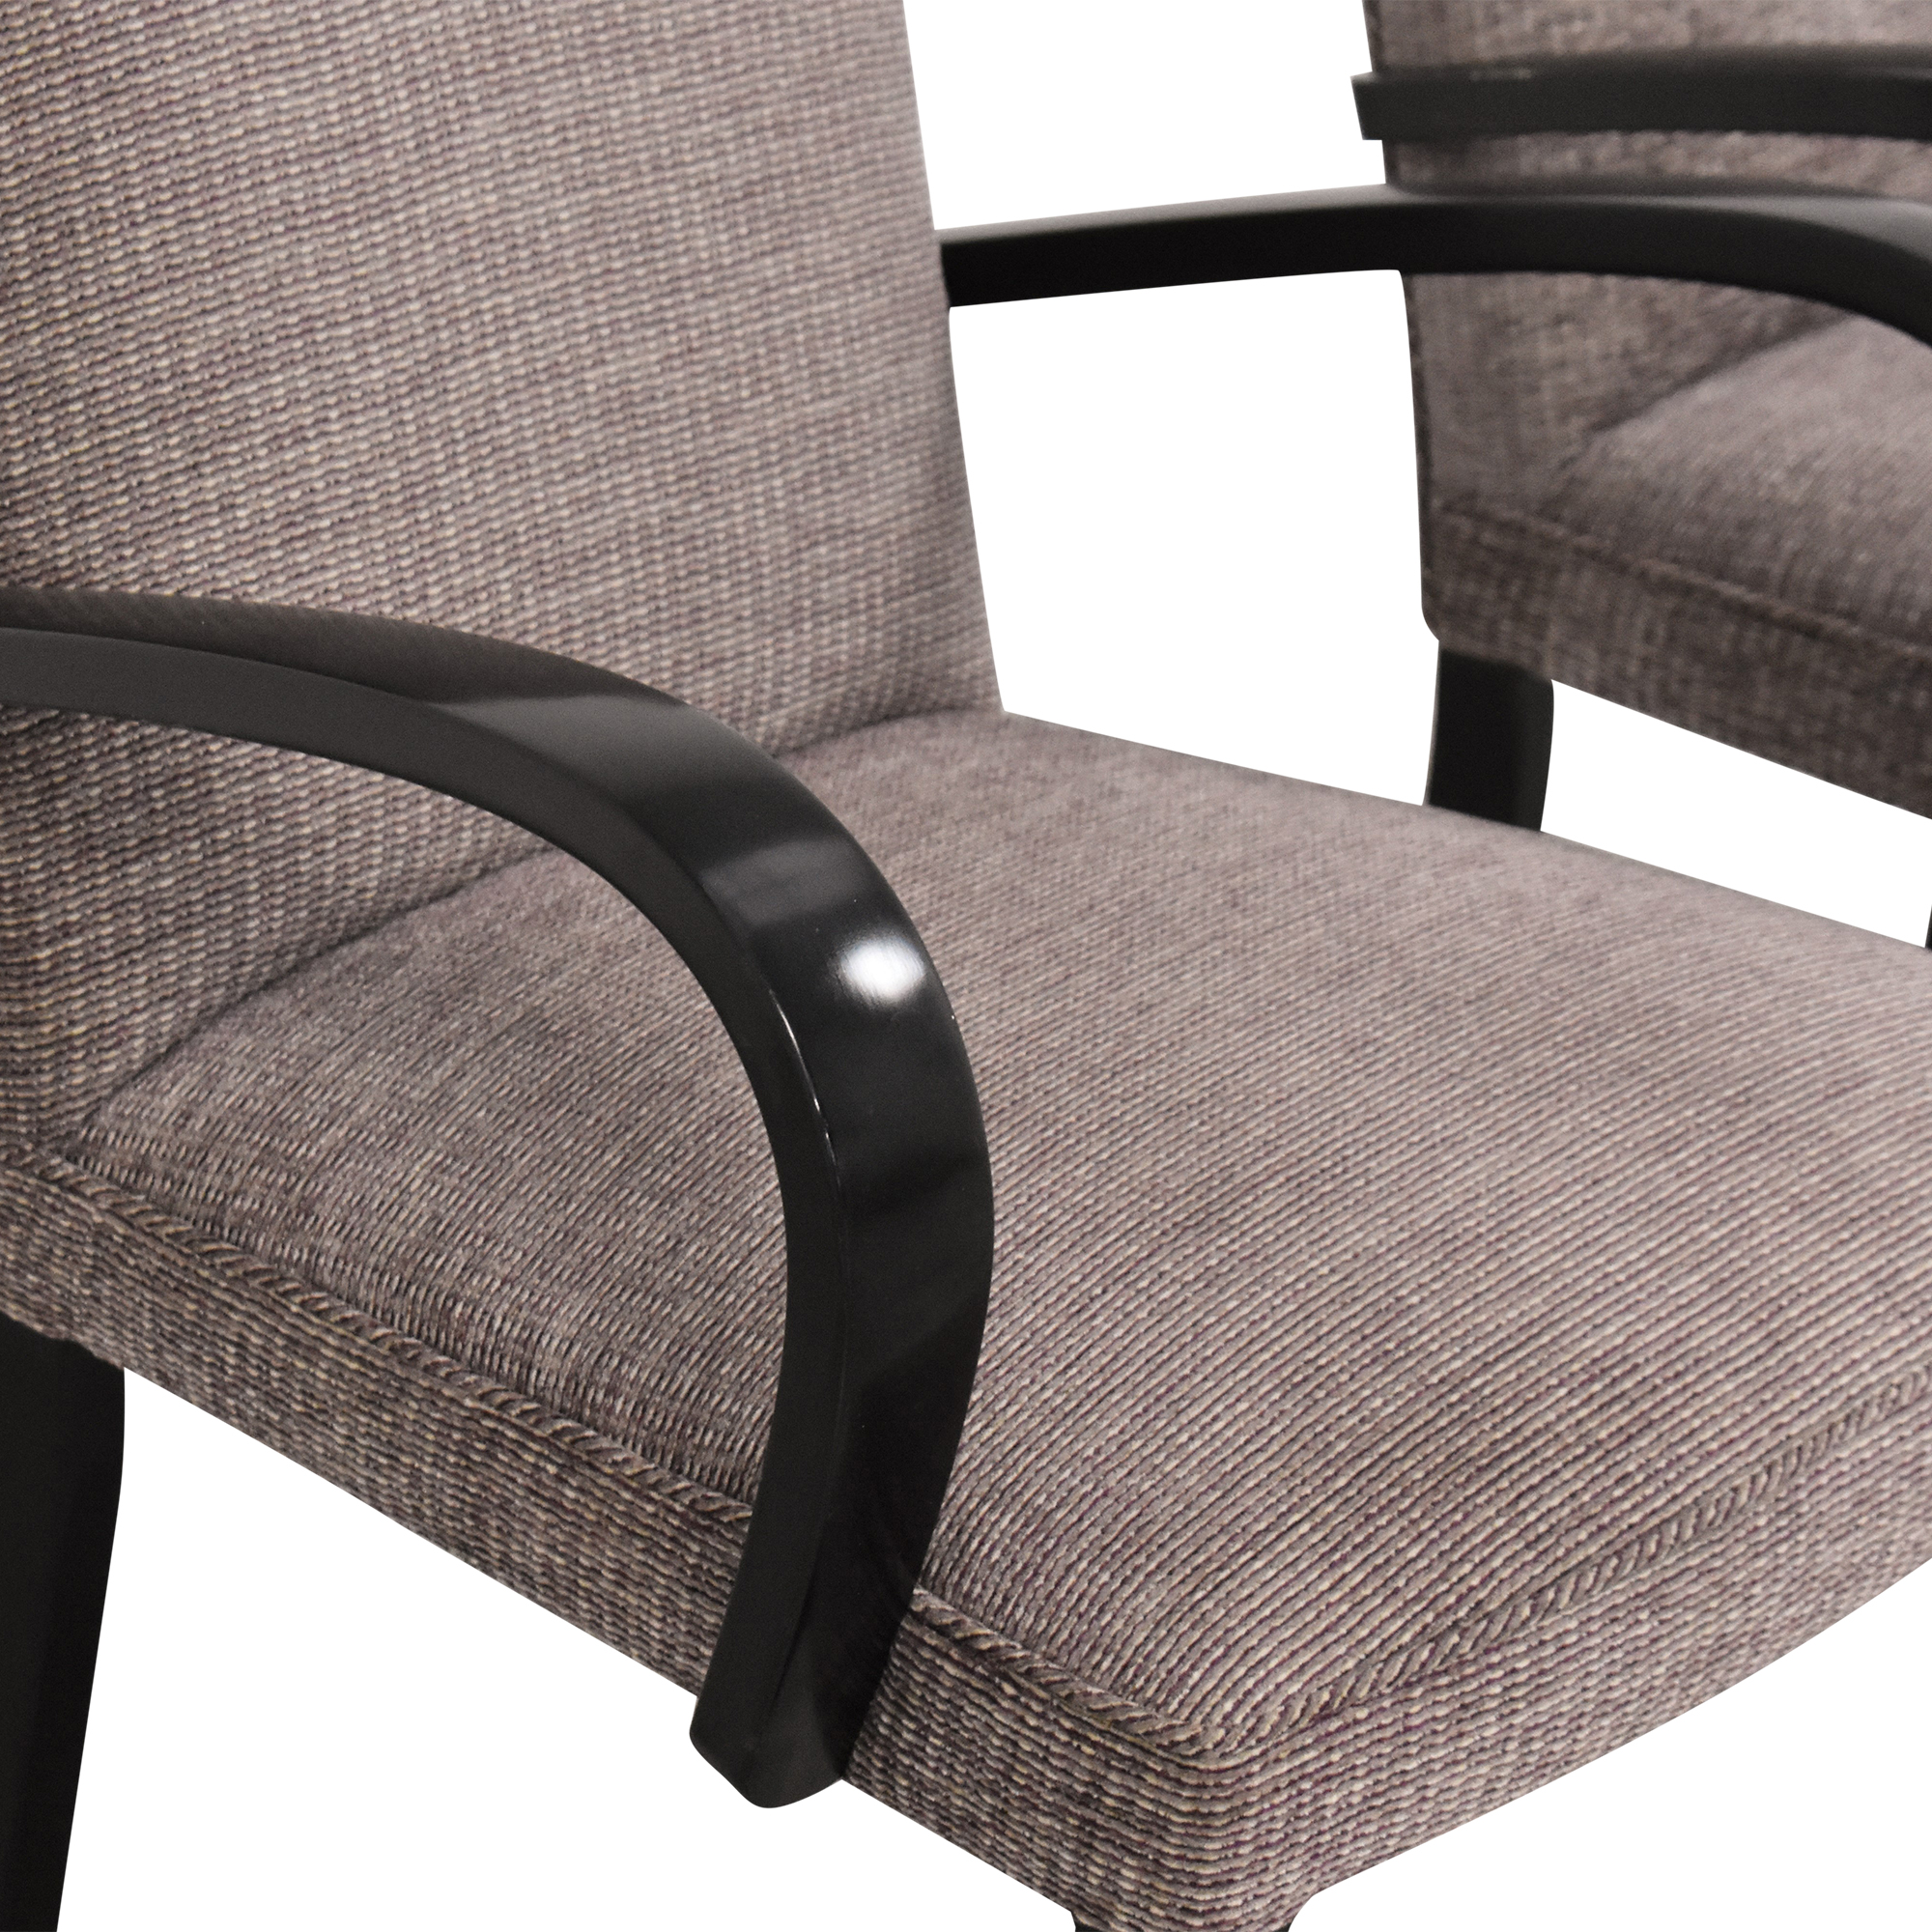 Office Arm Chairs / Chairs